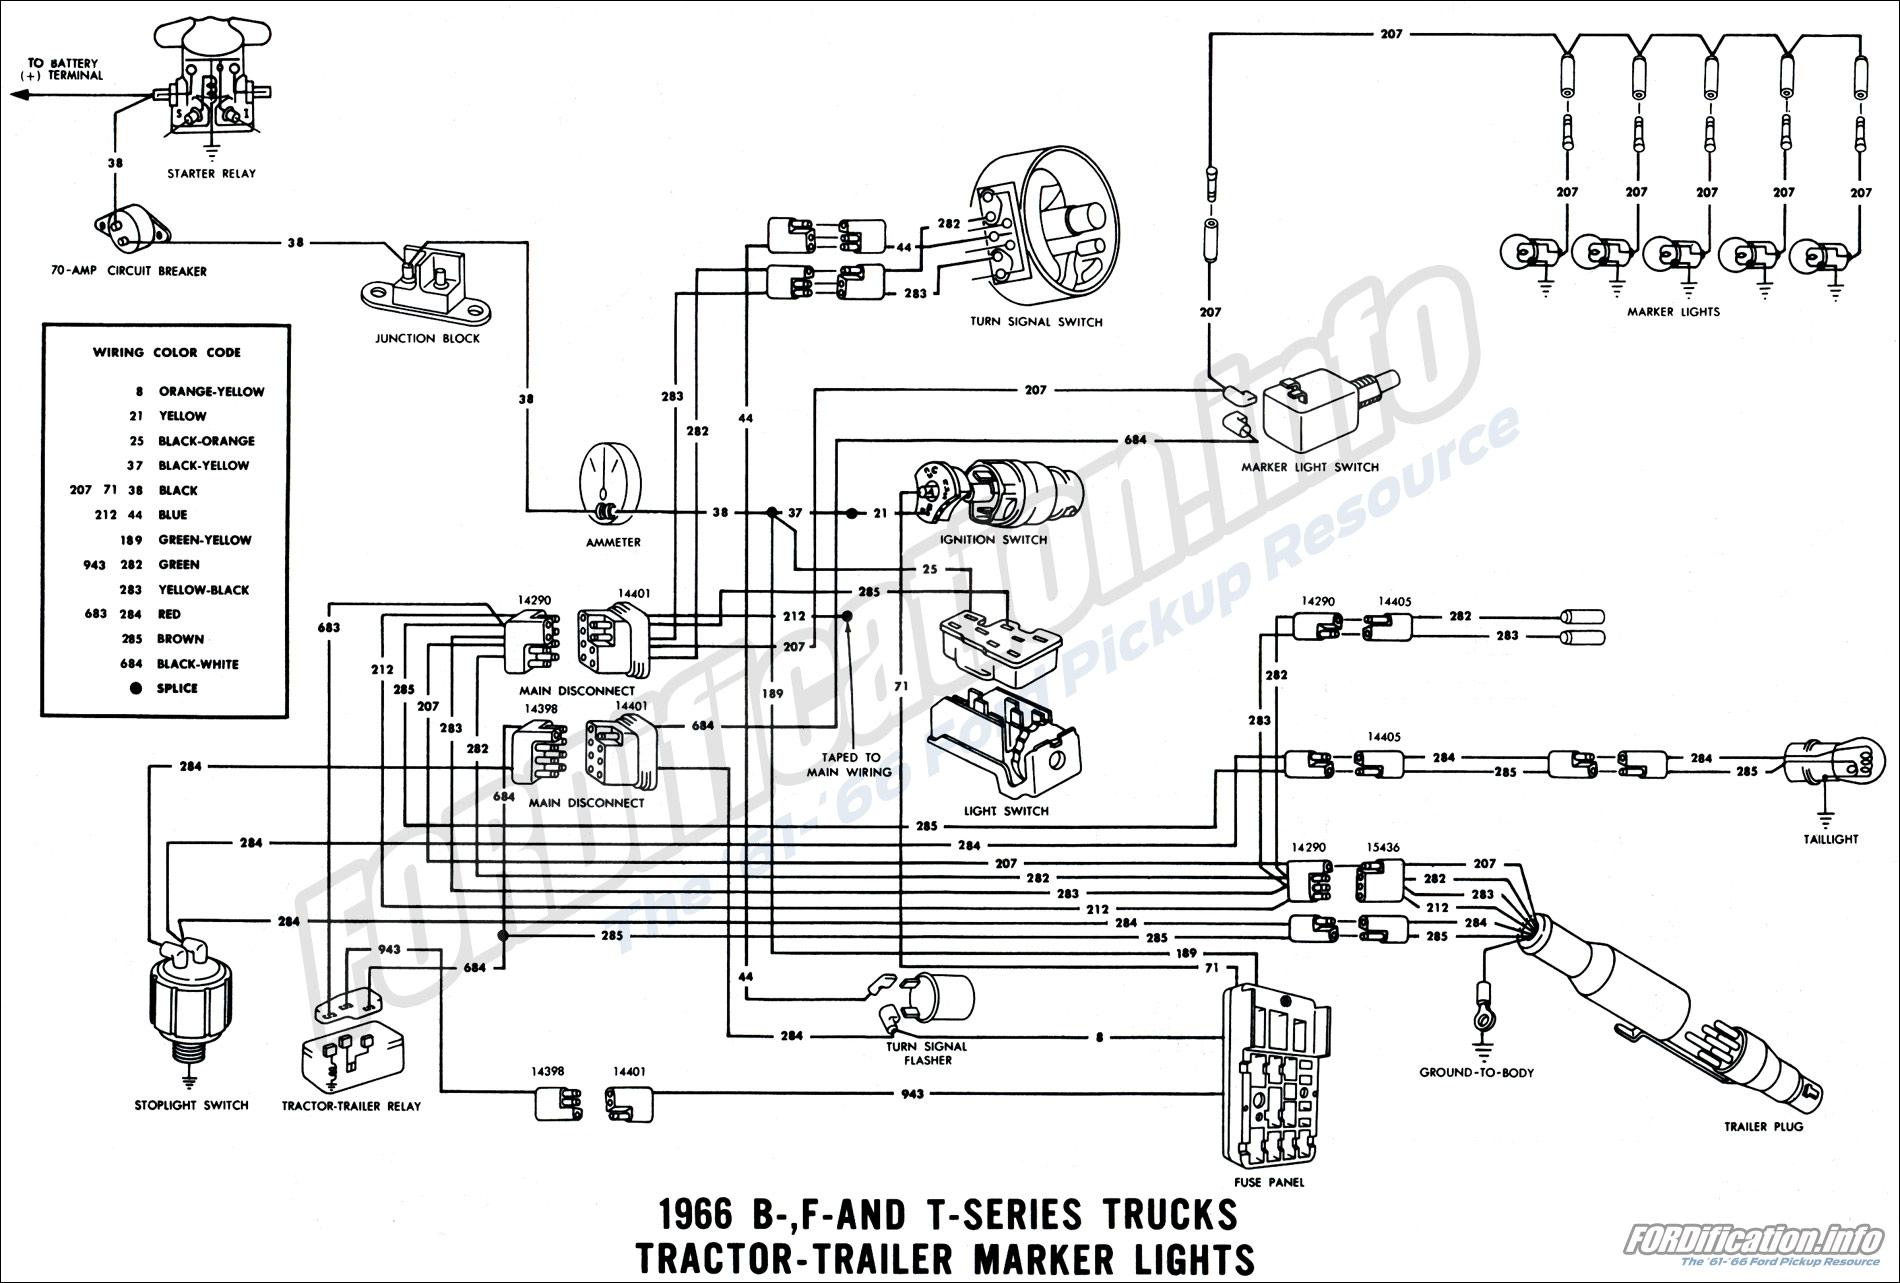 [GJFJ_338]  1966 Ford Truck Wiring Diagrams - FORDification.info - The '61-'66 Ford  Pickup Resource | 1966 Ford F250 Wiring Diagram |  | FORDification.info